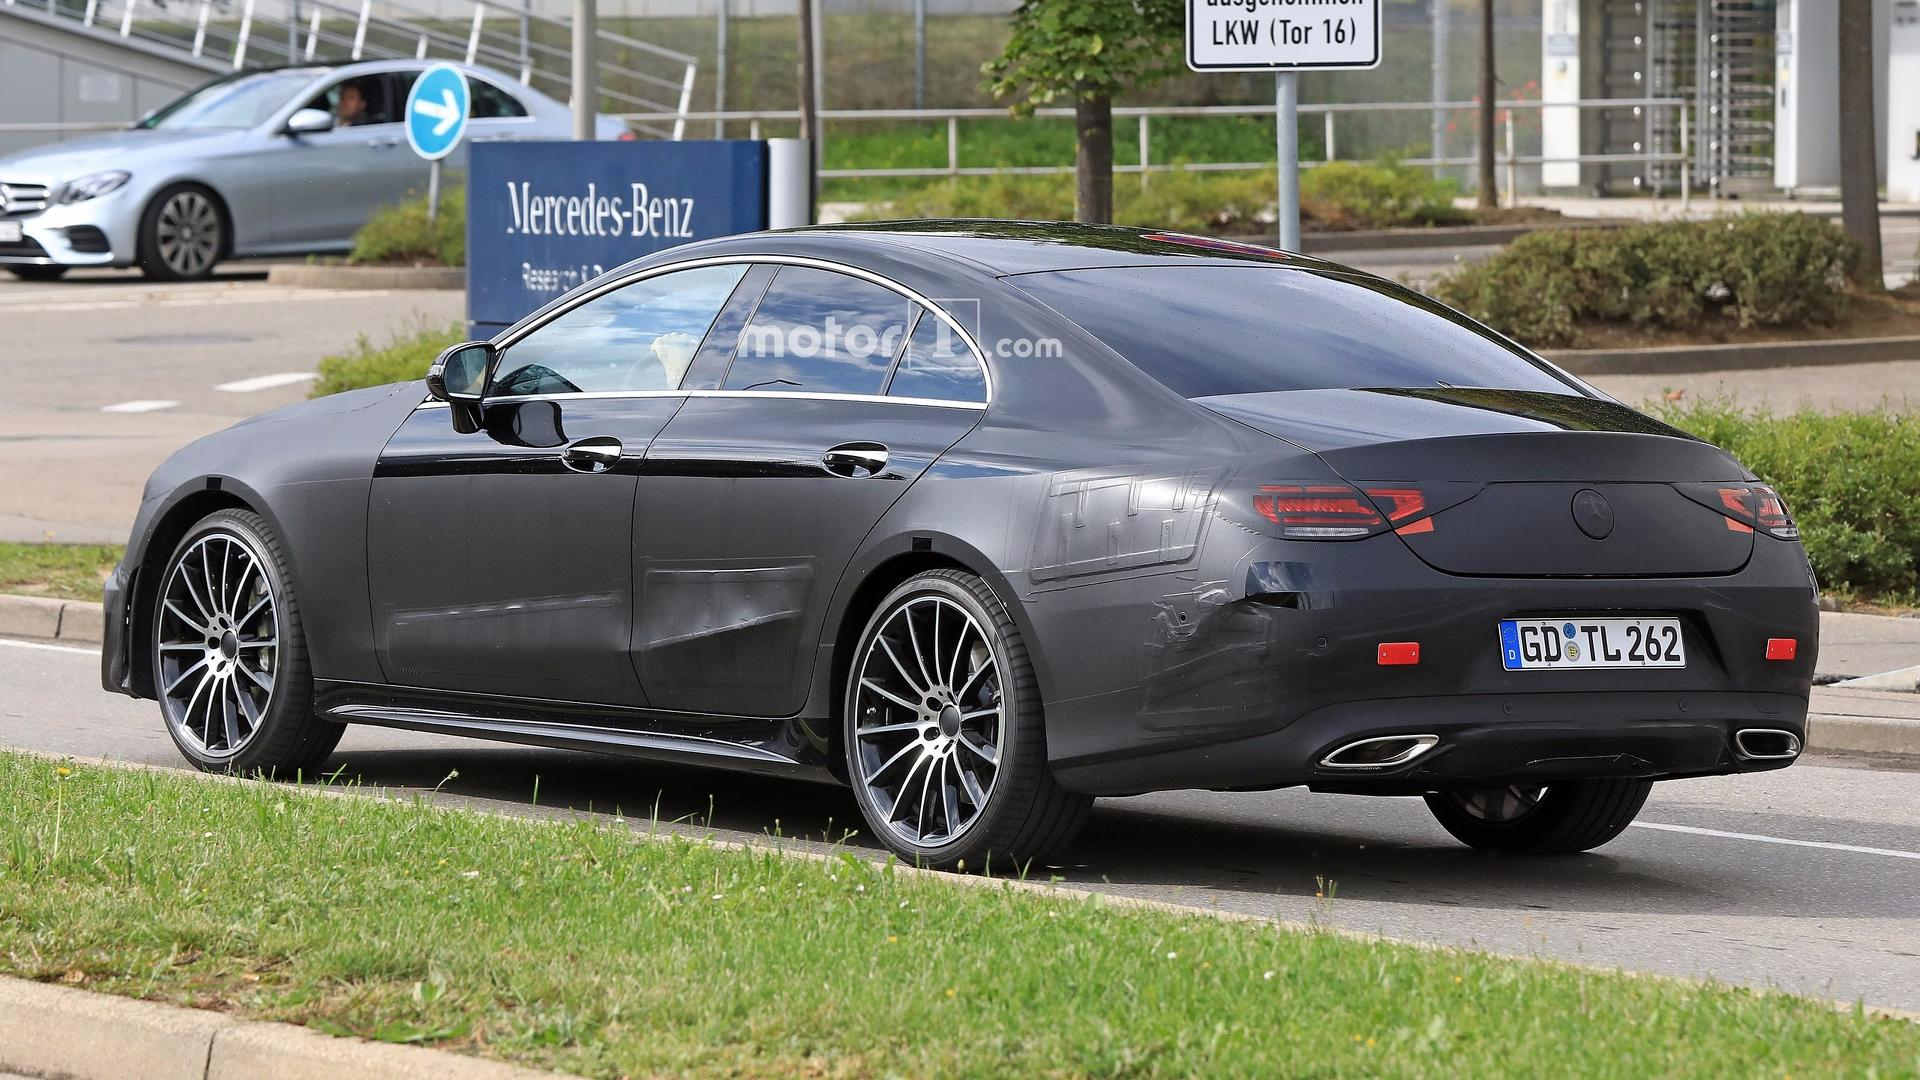 New Mercedes Cls Spotted With Barely Any Camo On Its Elegant Body